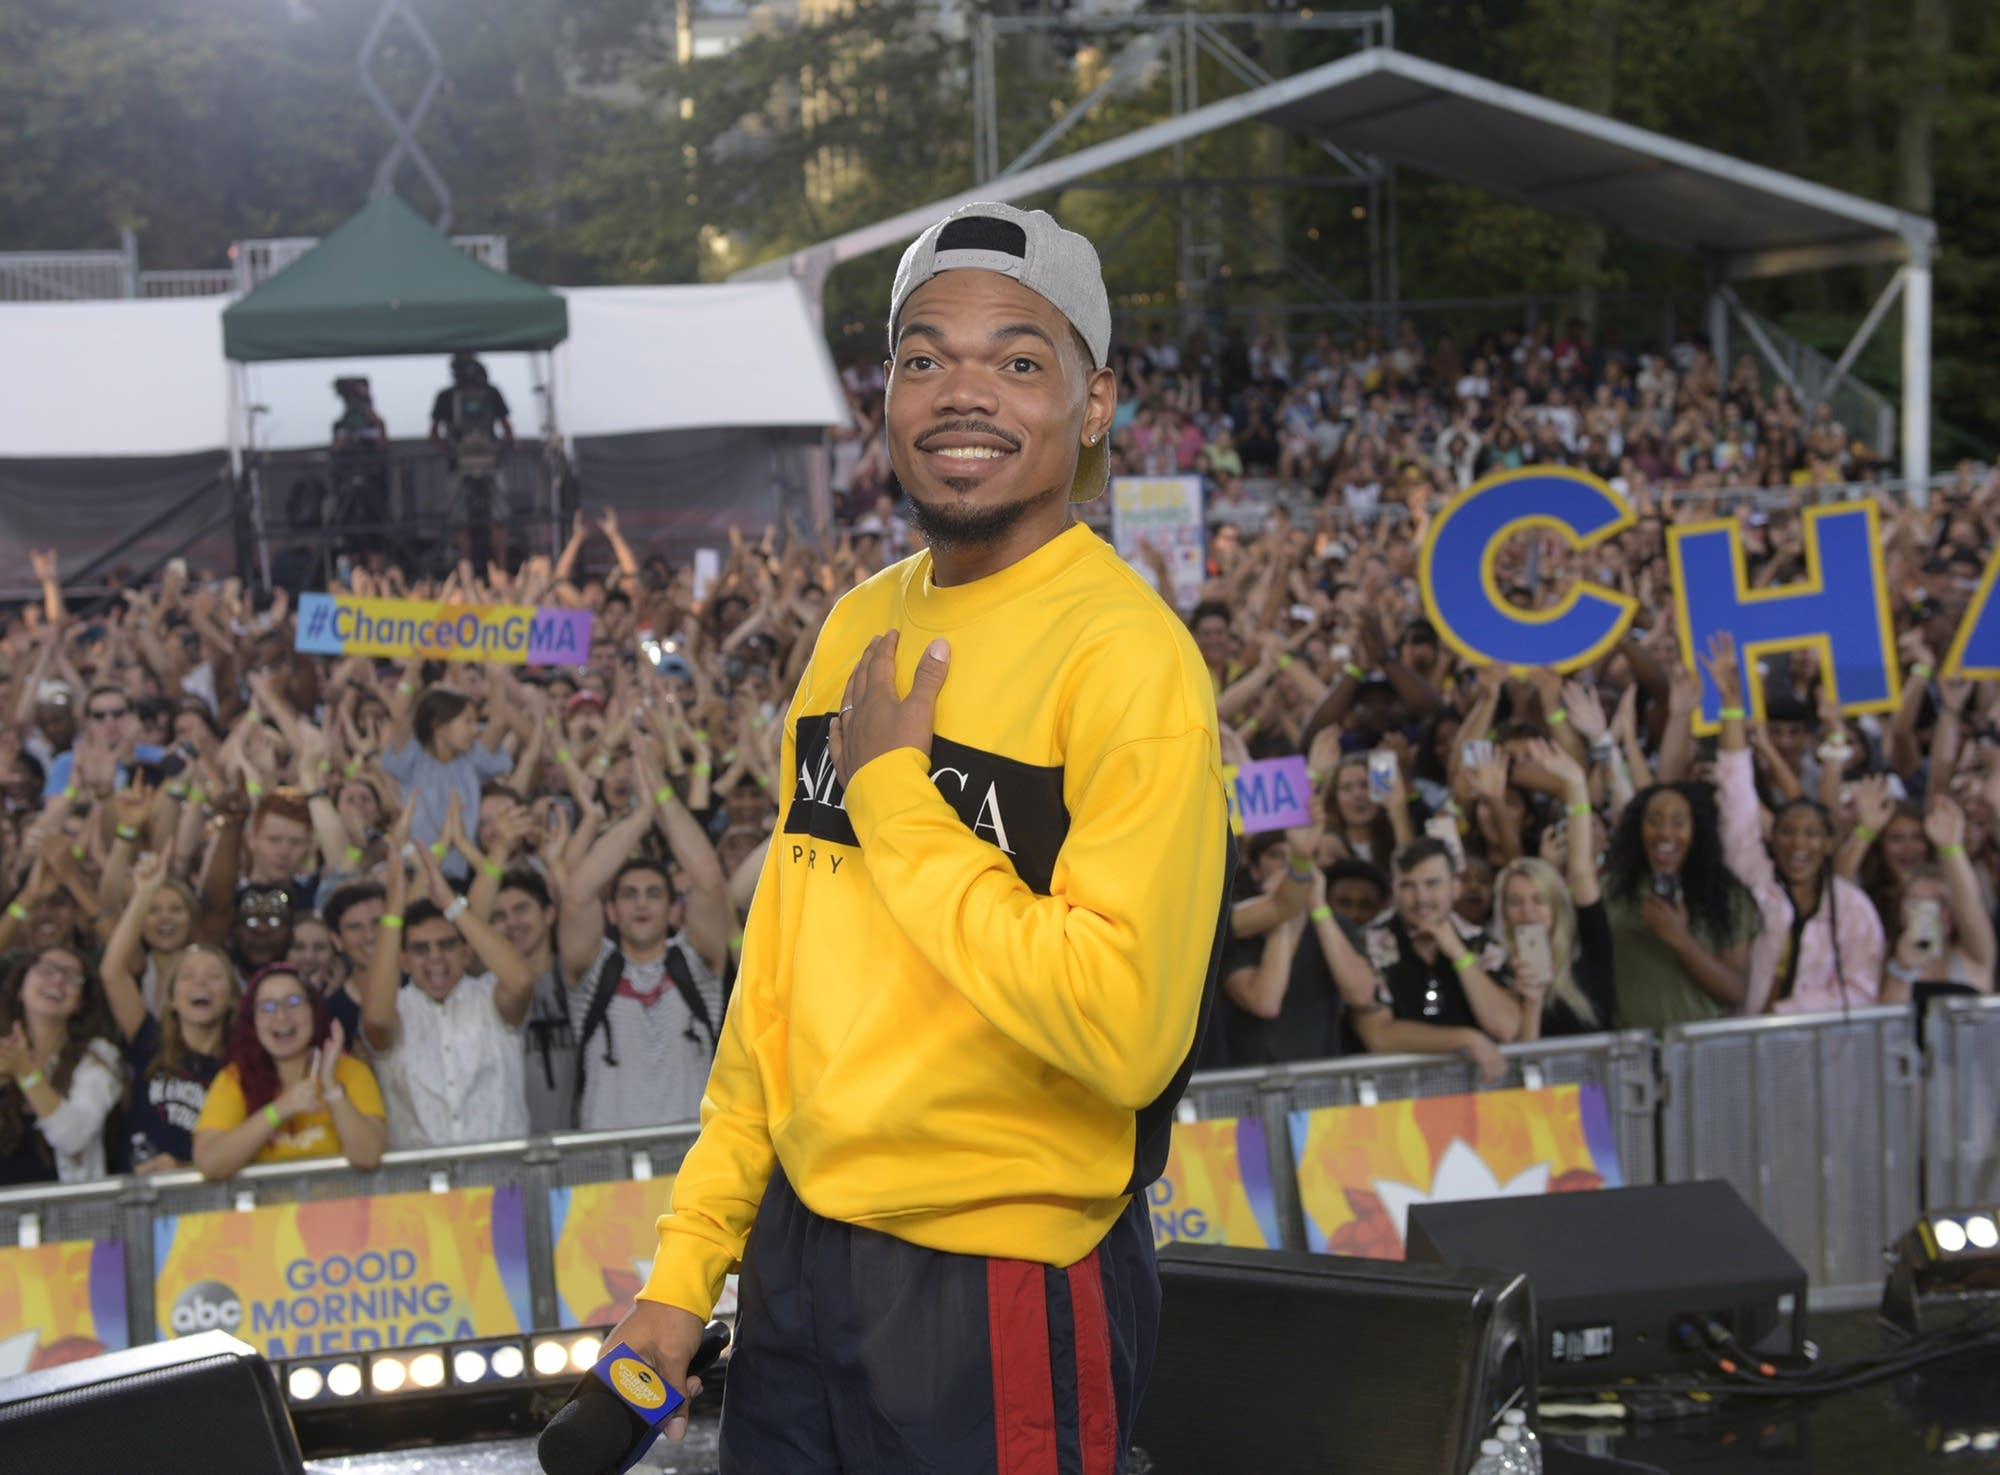 Chance the Rapper performs on 'Good Morning America' on ABC